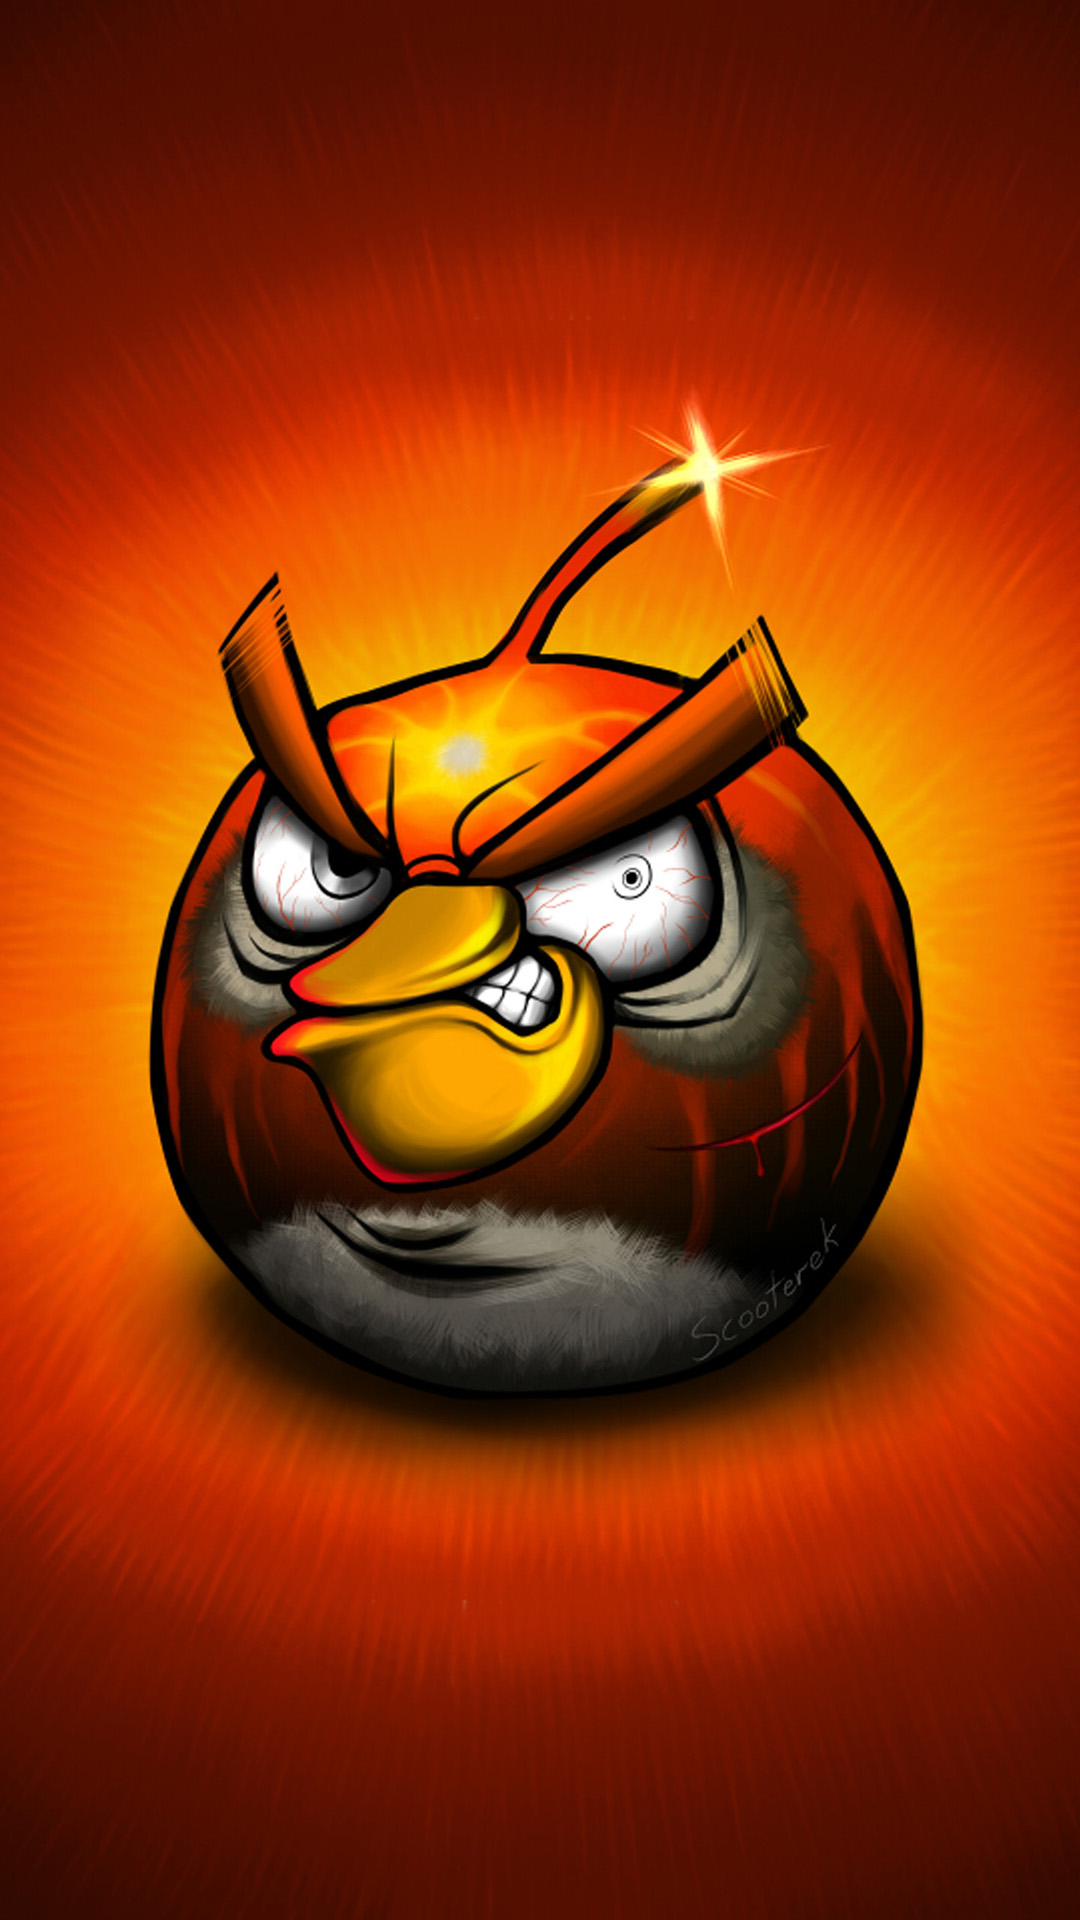 iphone 6 plus angry birds 17 hd wallpaper